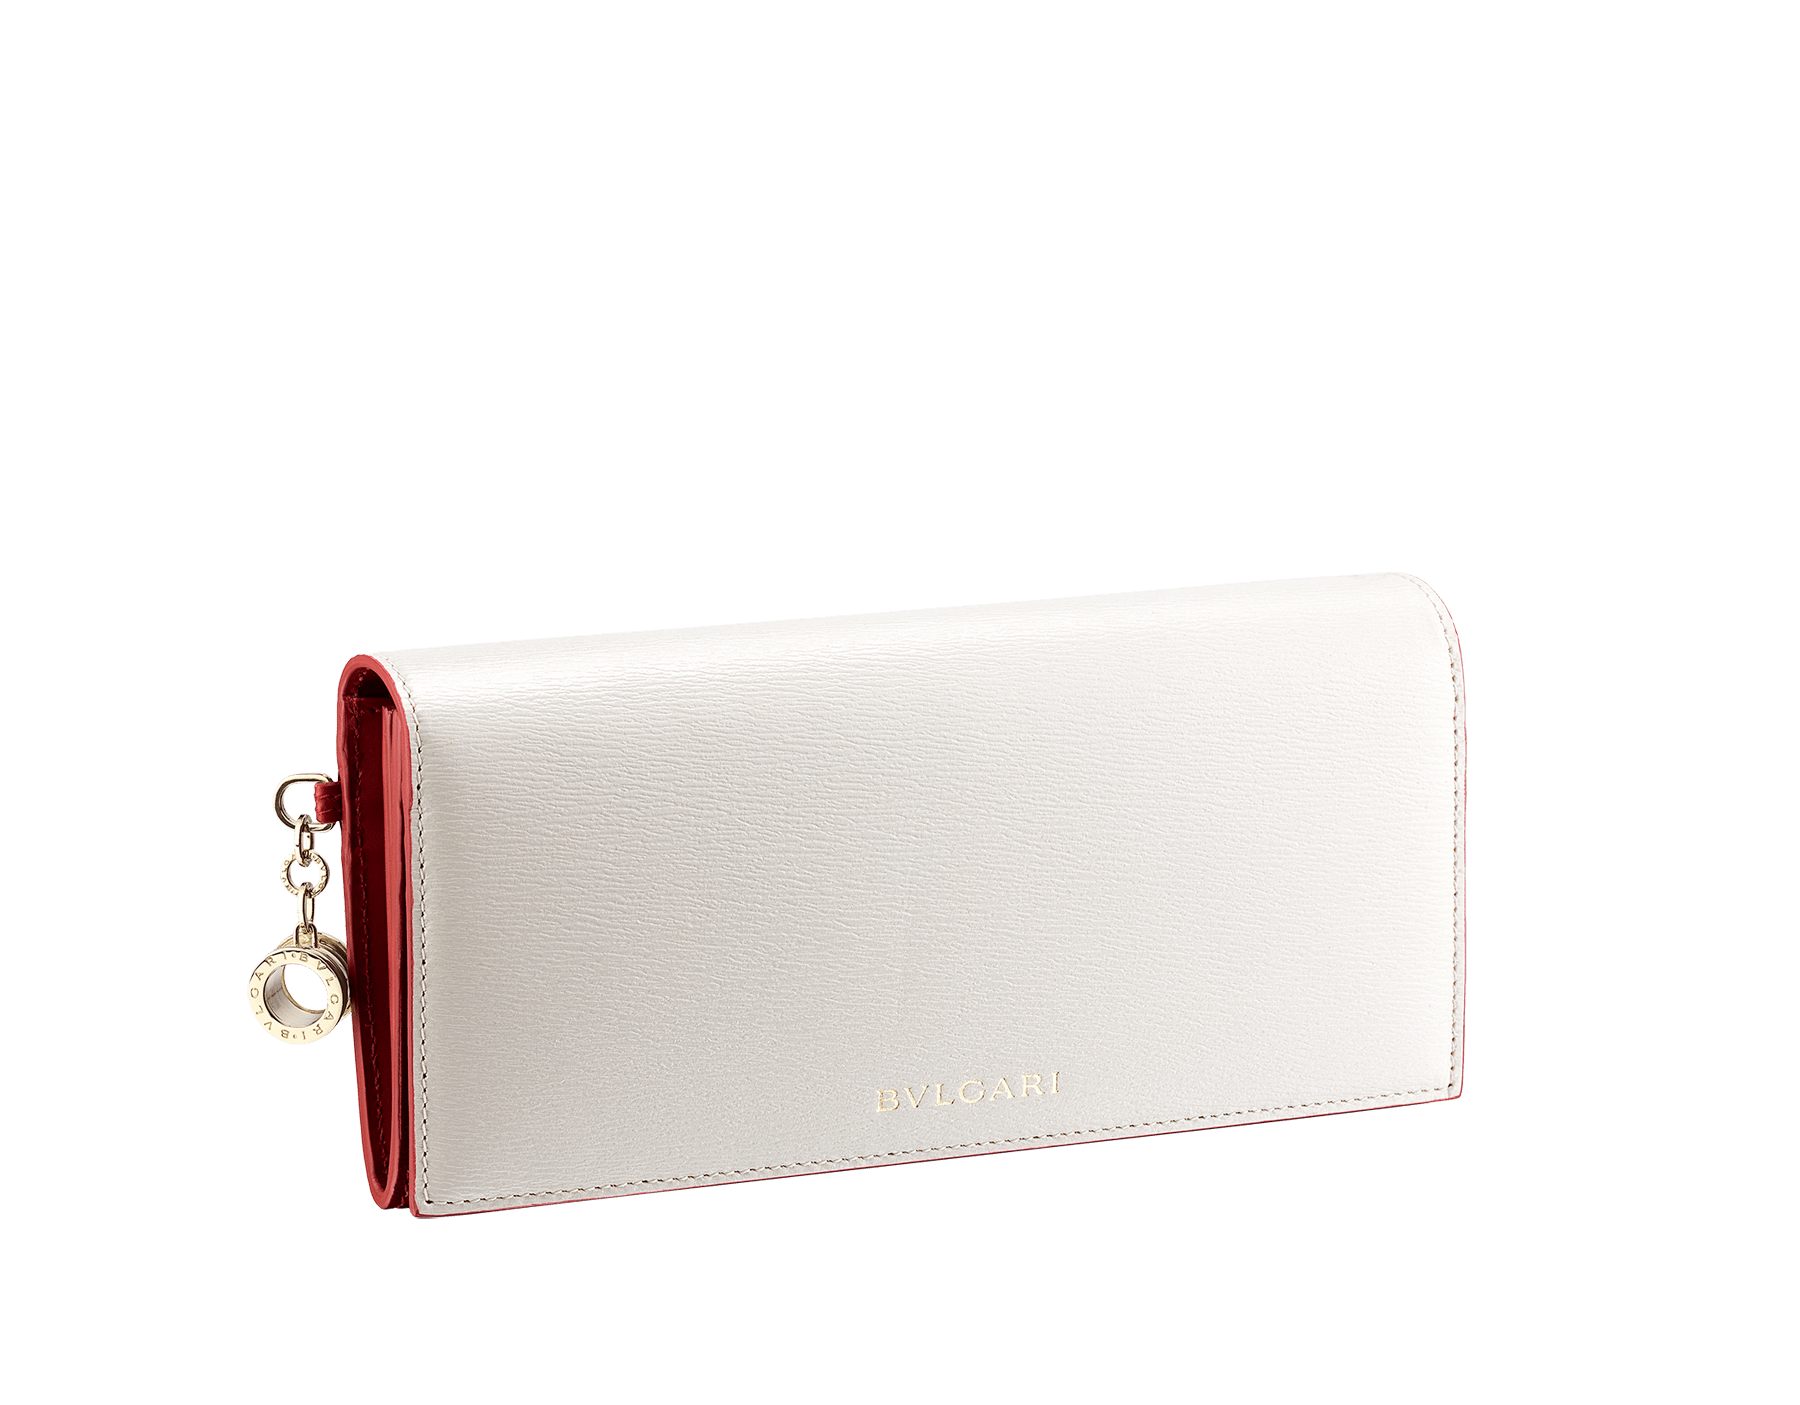 B.zero1 pochette wallet in daisy topaz and taffy quartz goatskin. Iconic B.zero1 charm in light gold plated brass and a clip closure. BZA-WLT-SLI-POC-CL image 1